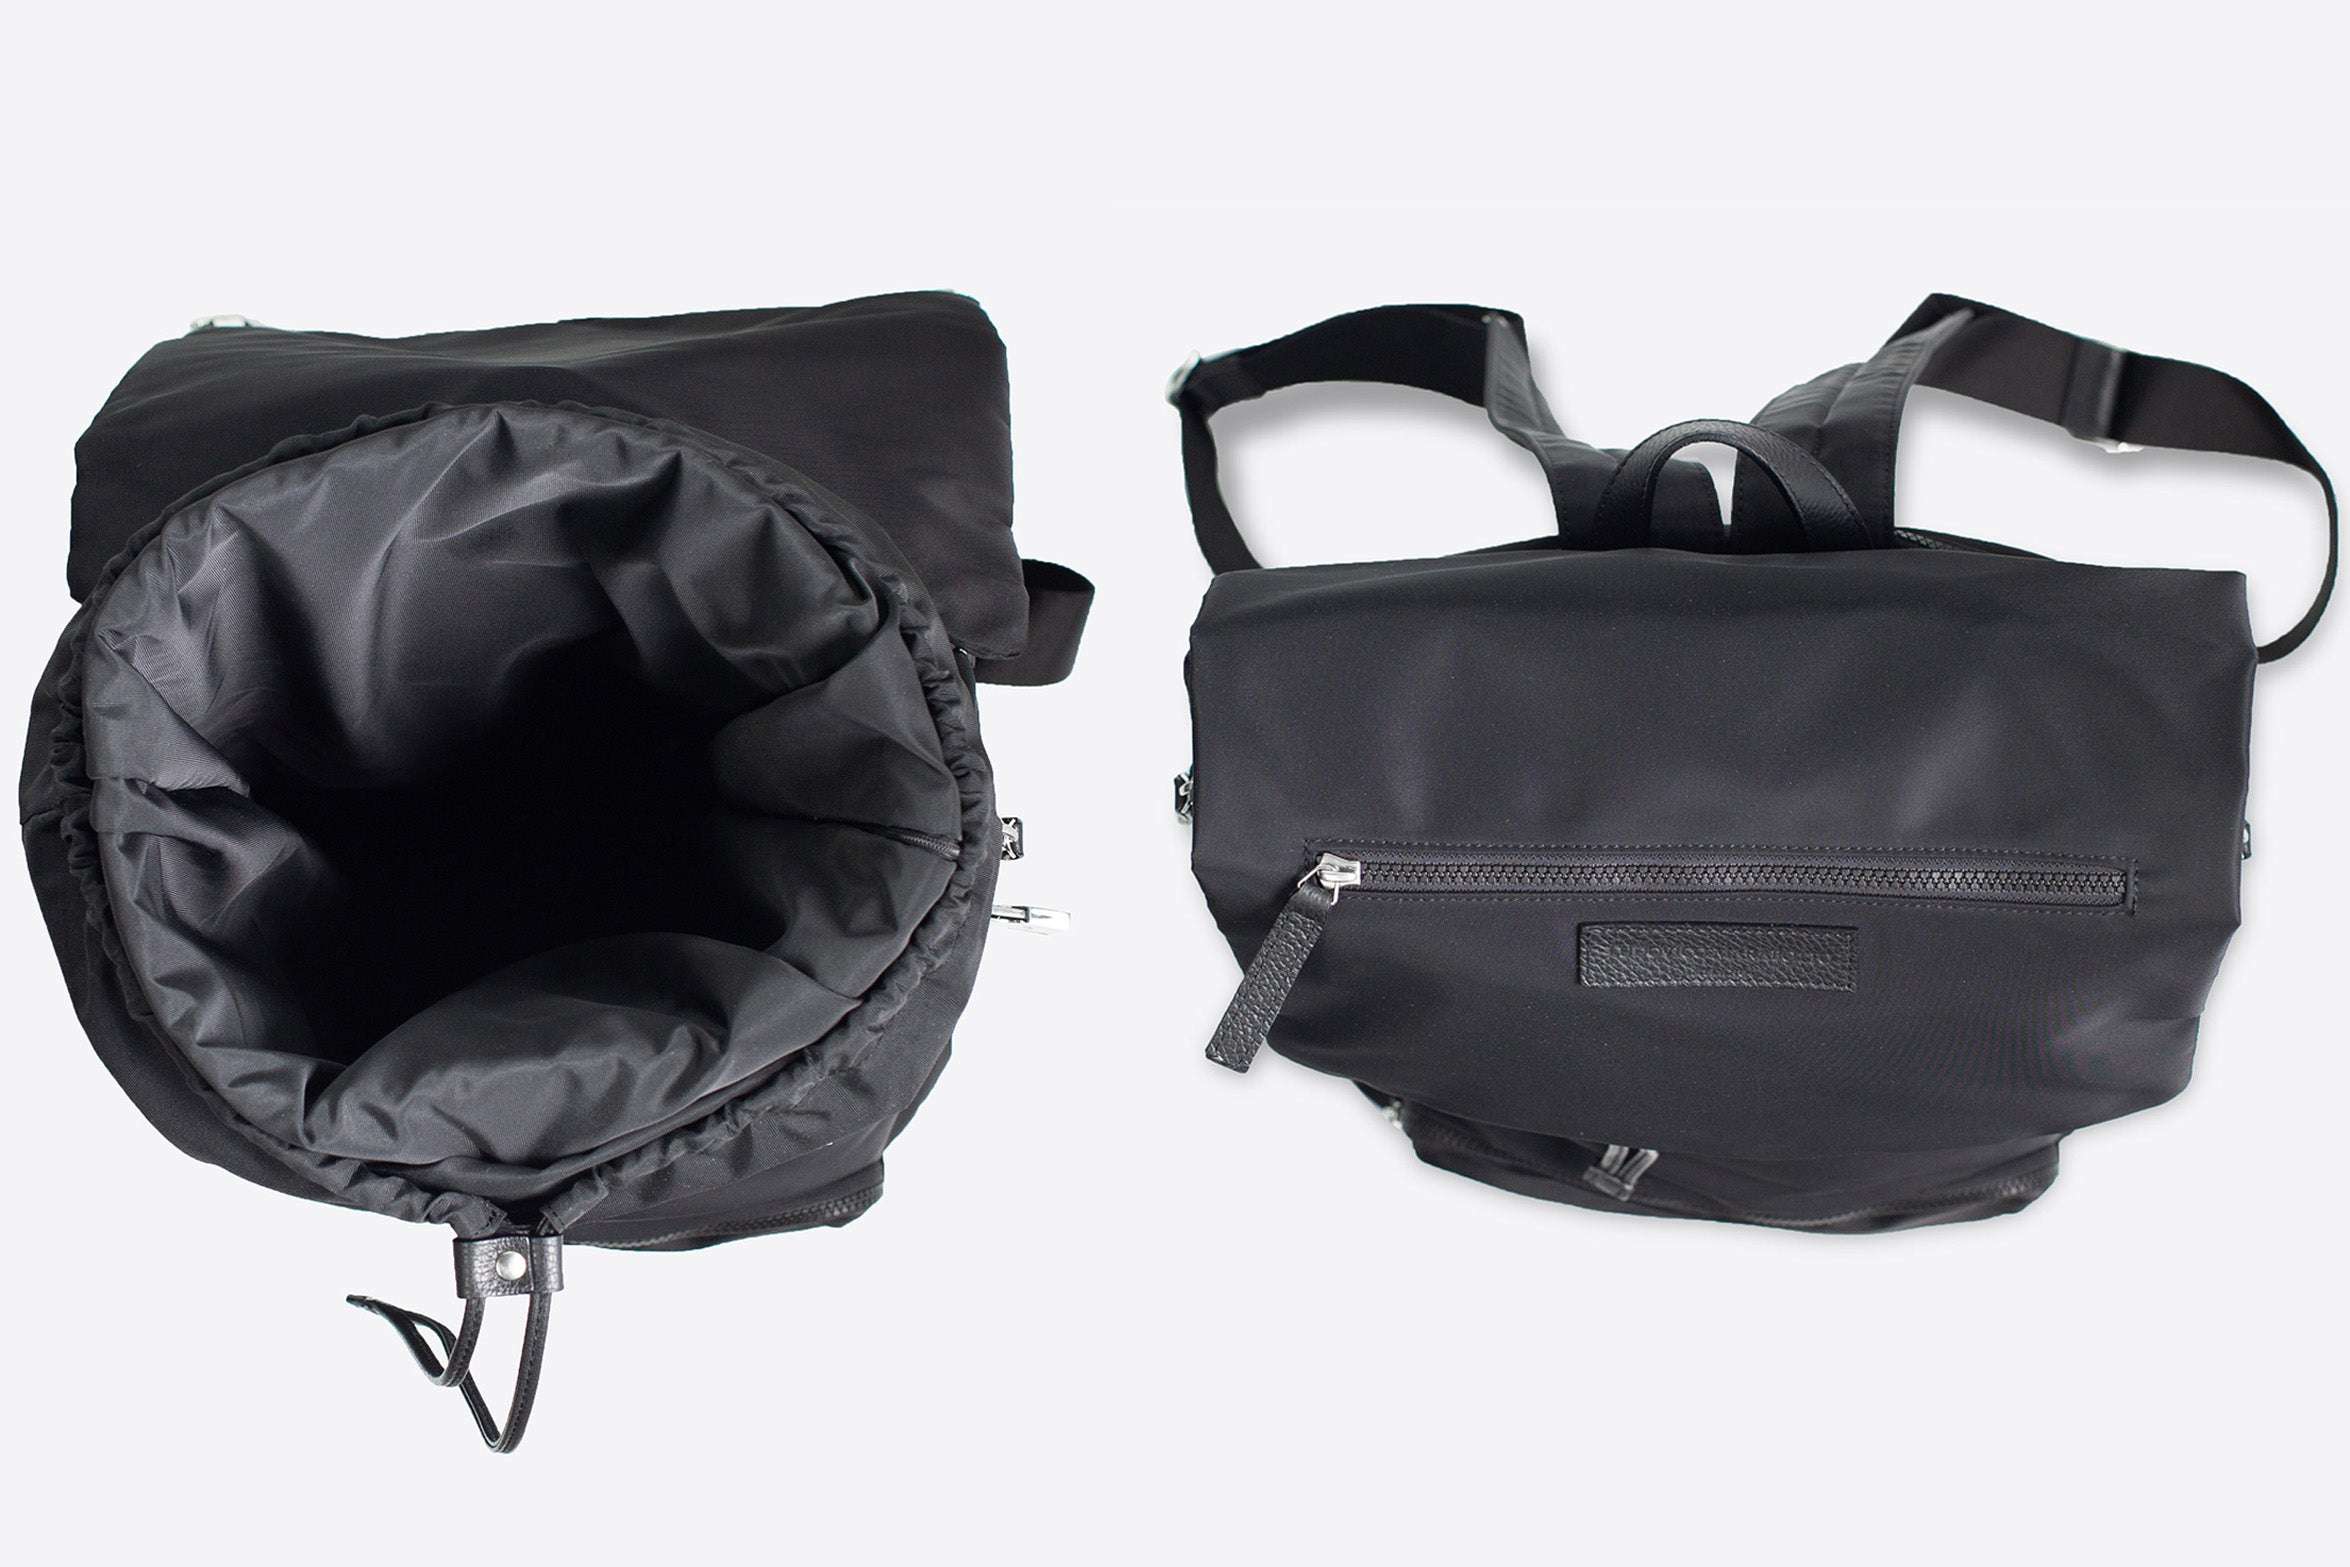 Expandable suit garment backpack